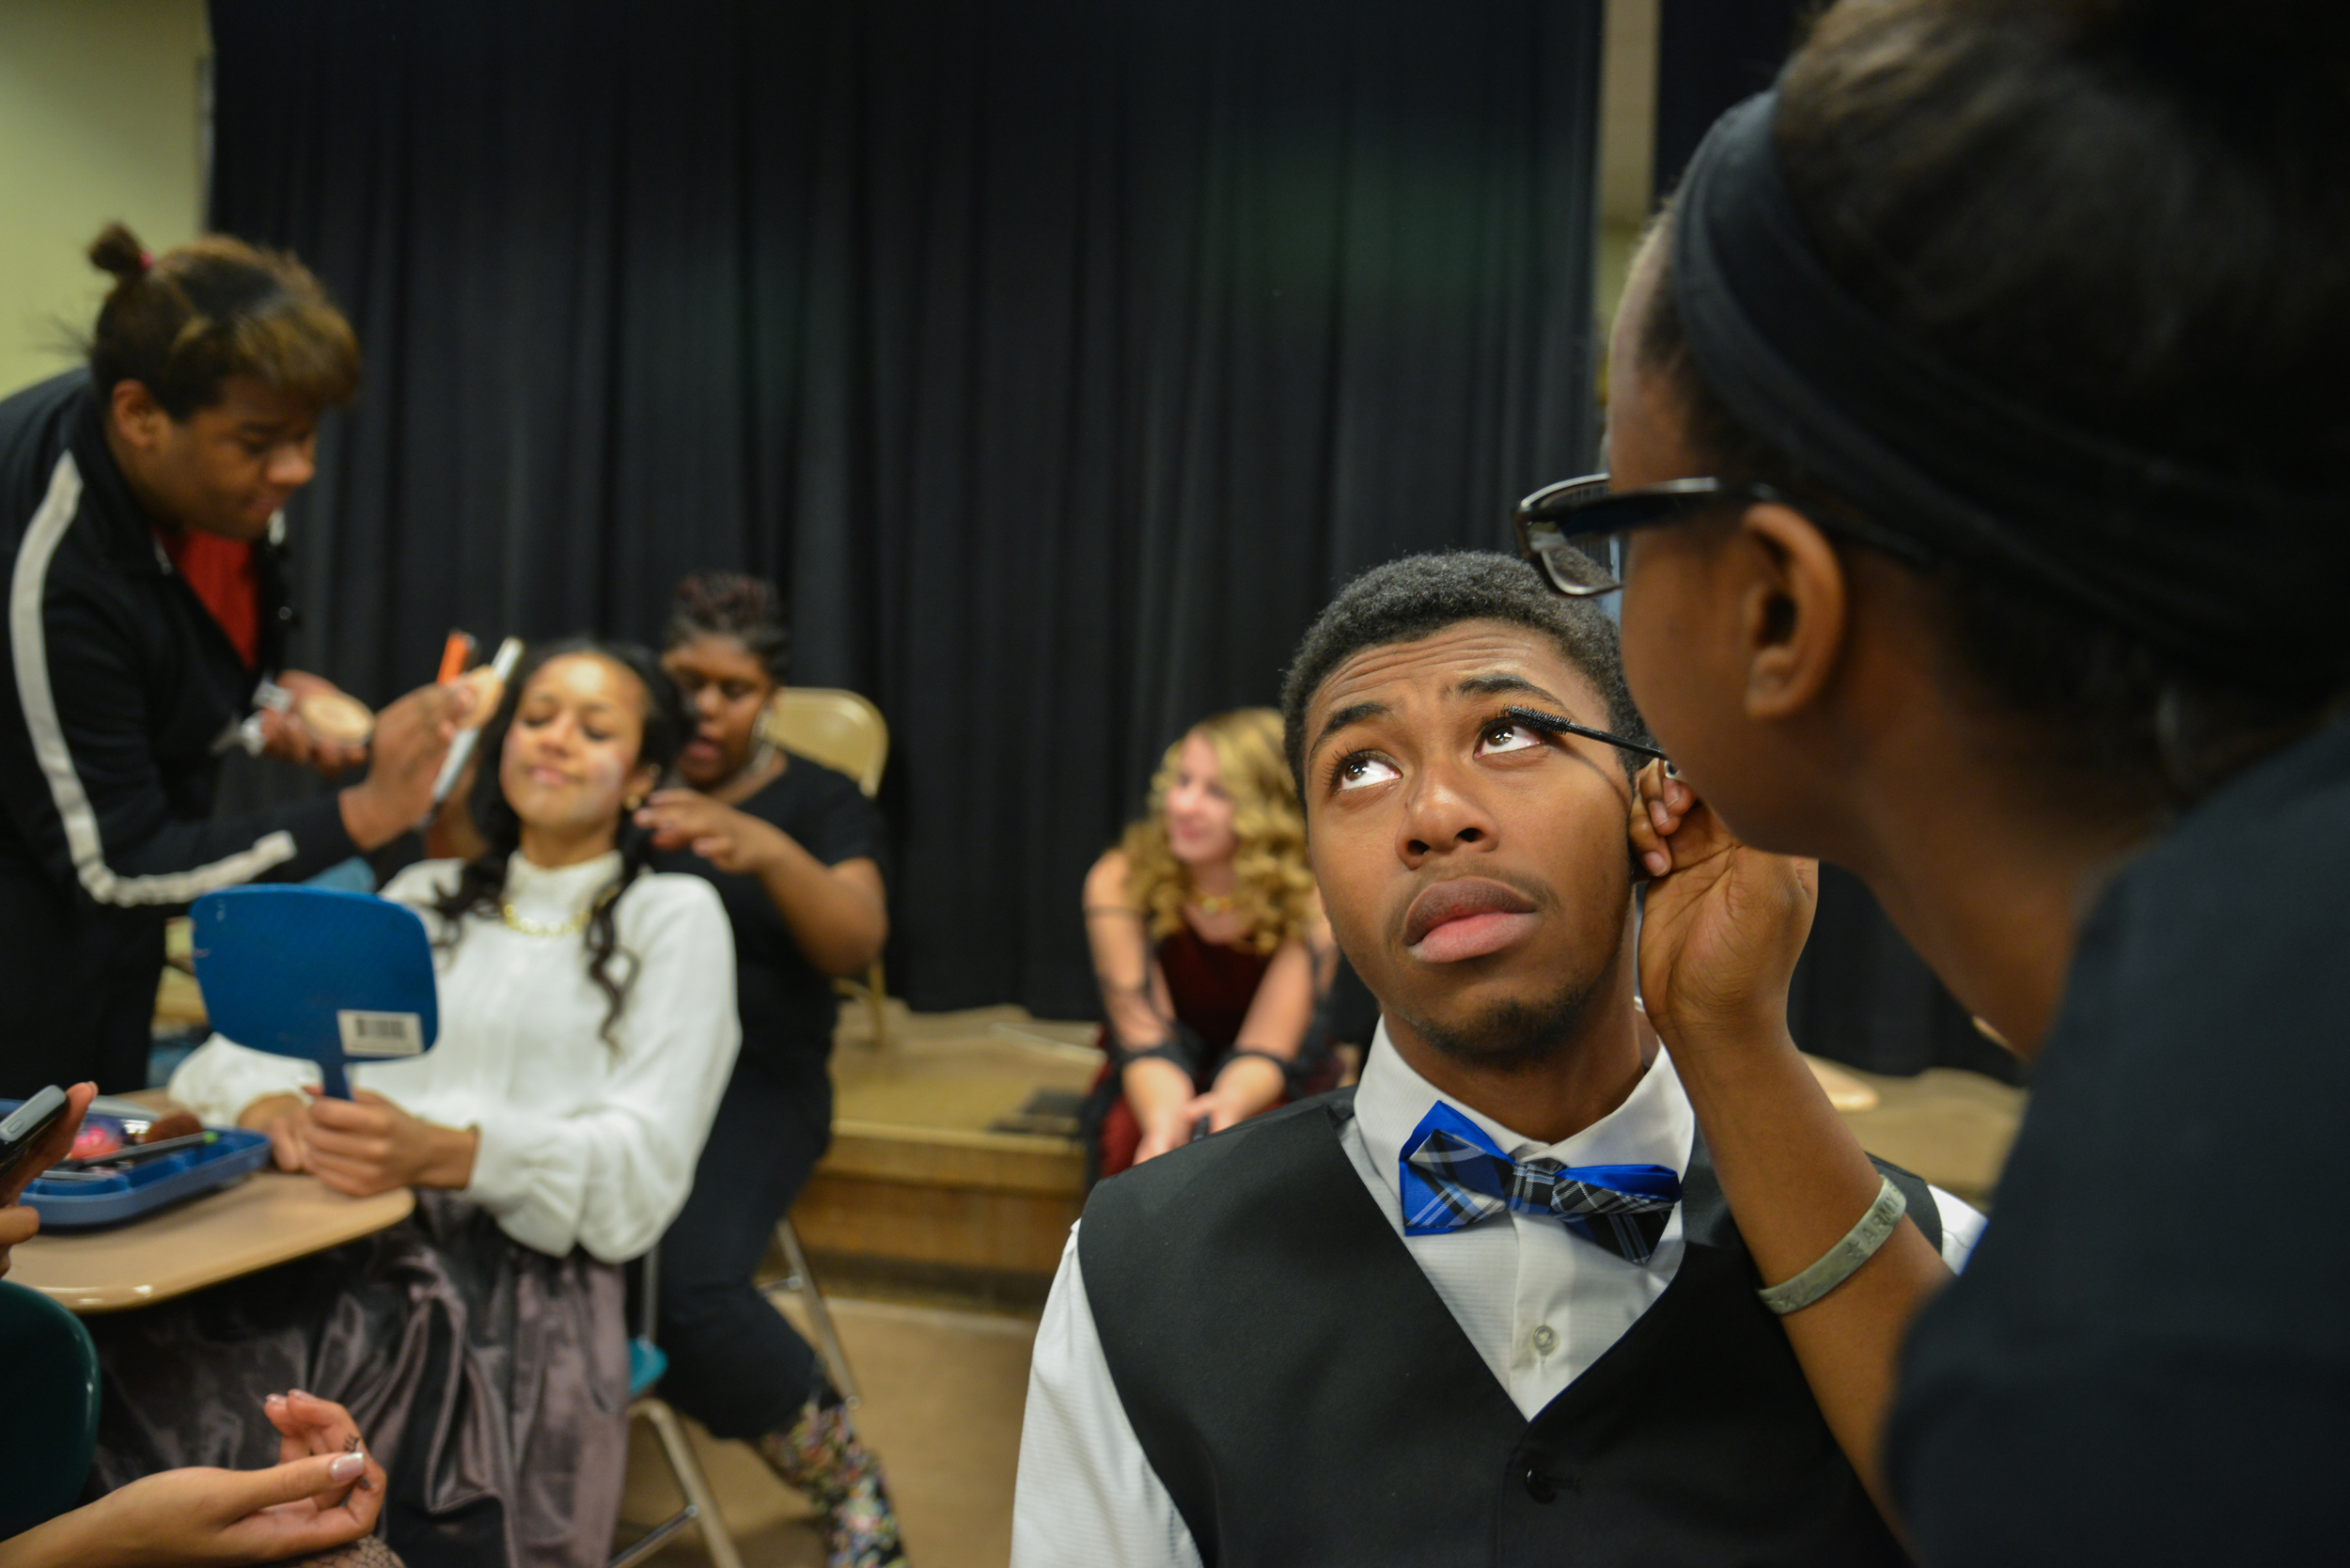 In addition to cheerleading, Kenneth runs track,serves as the treasurer for the student government and is actively involved in East Detroit's theater program.